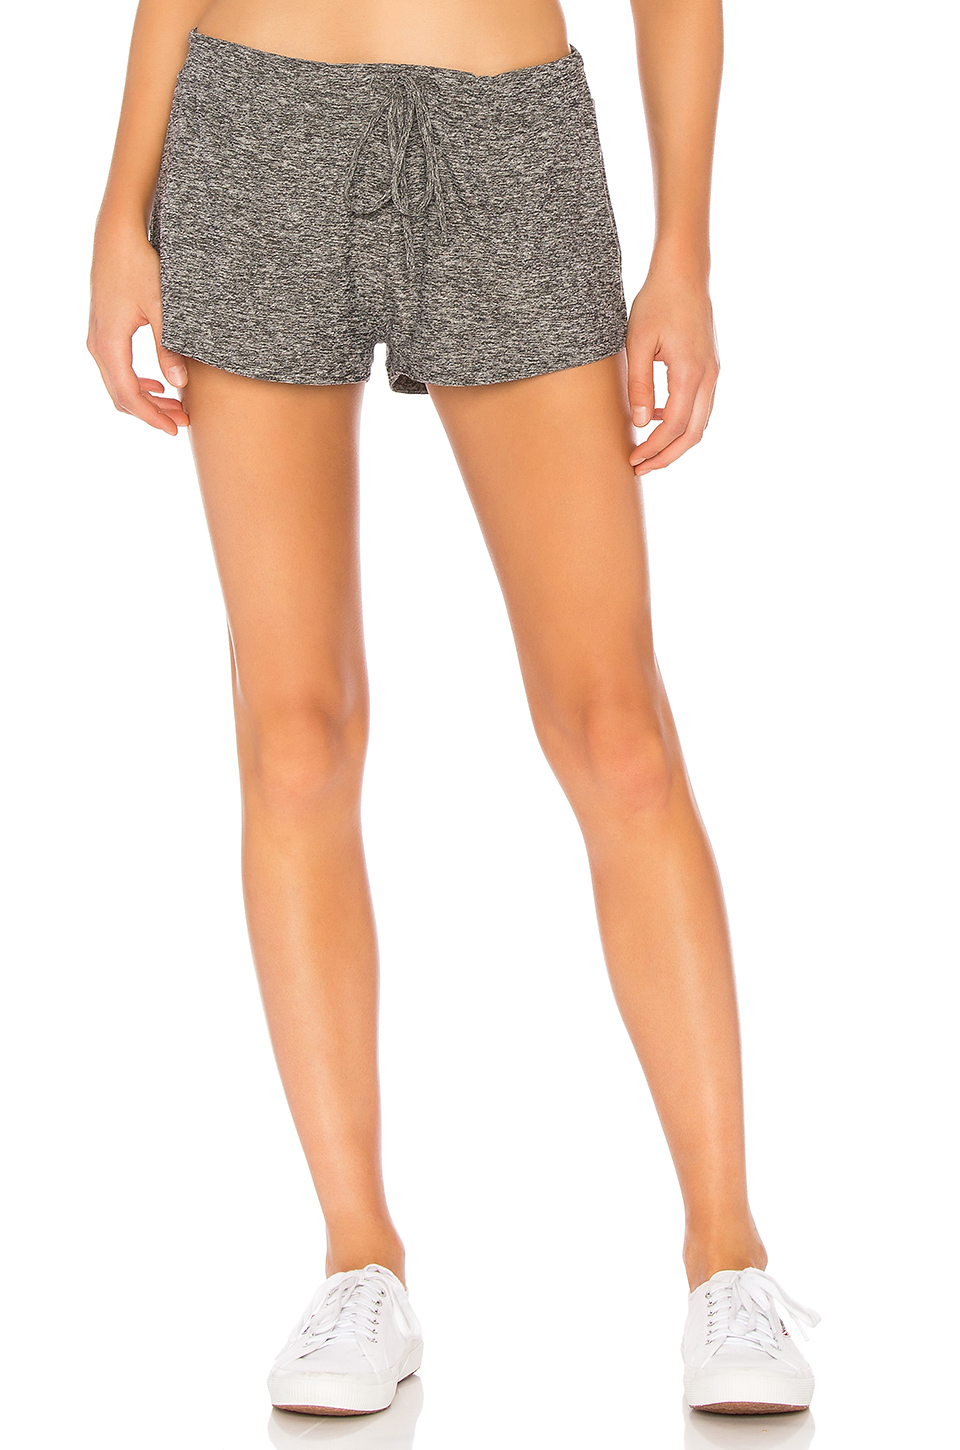 Beyond Yoga Jogger Shorts $66